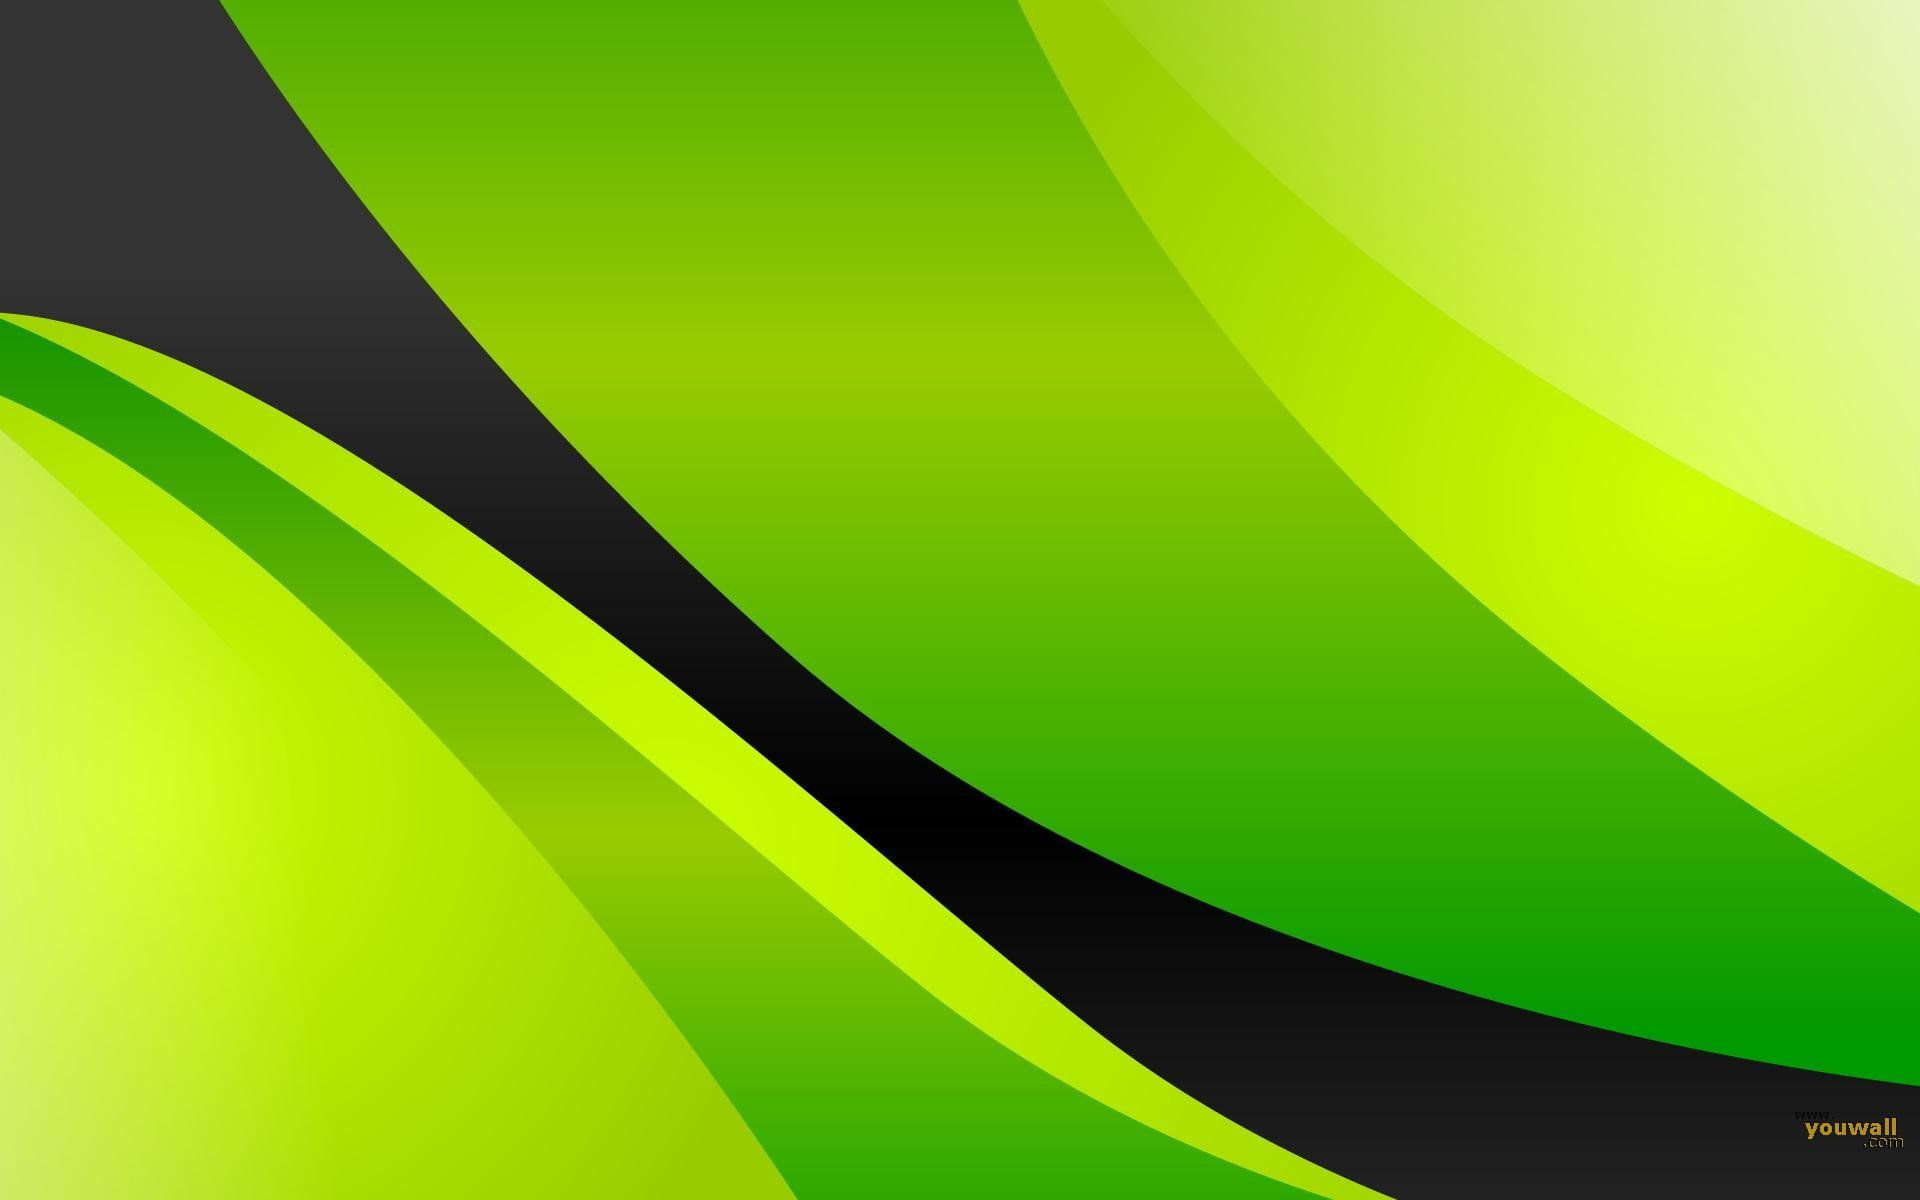 youwall - windows vista green theme wallpaper - wallpaper | free